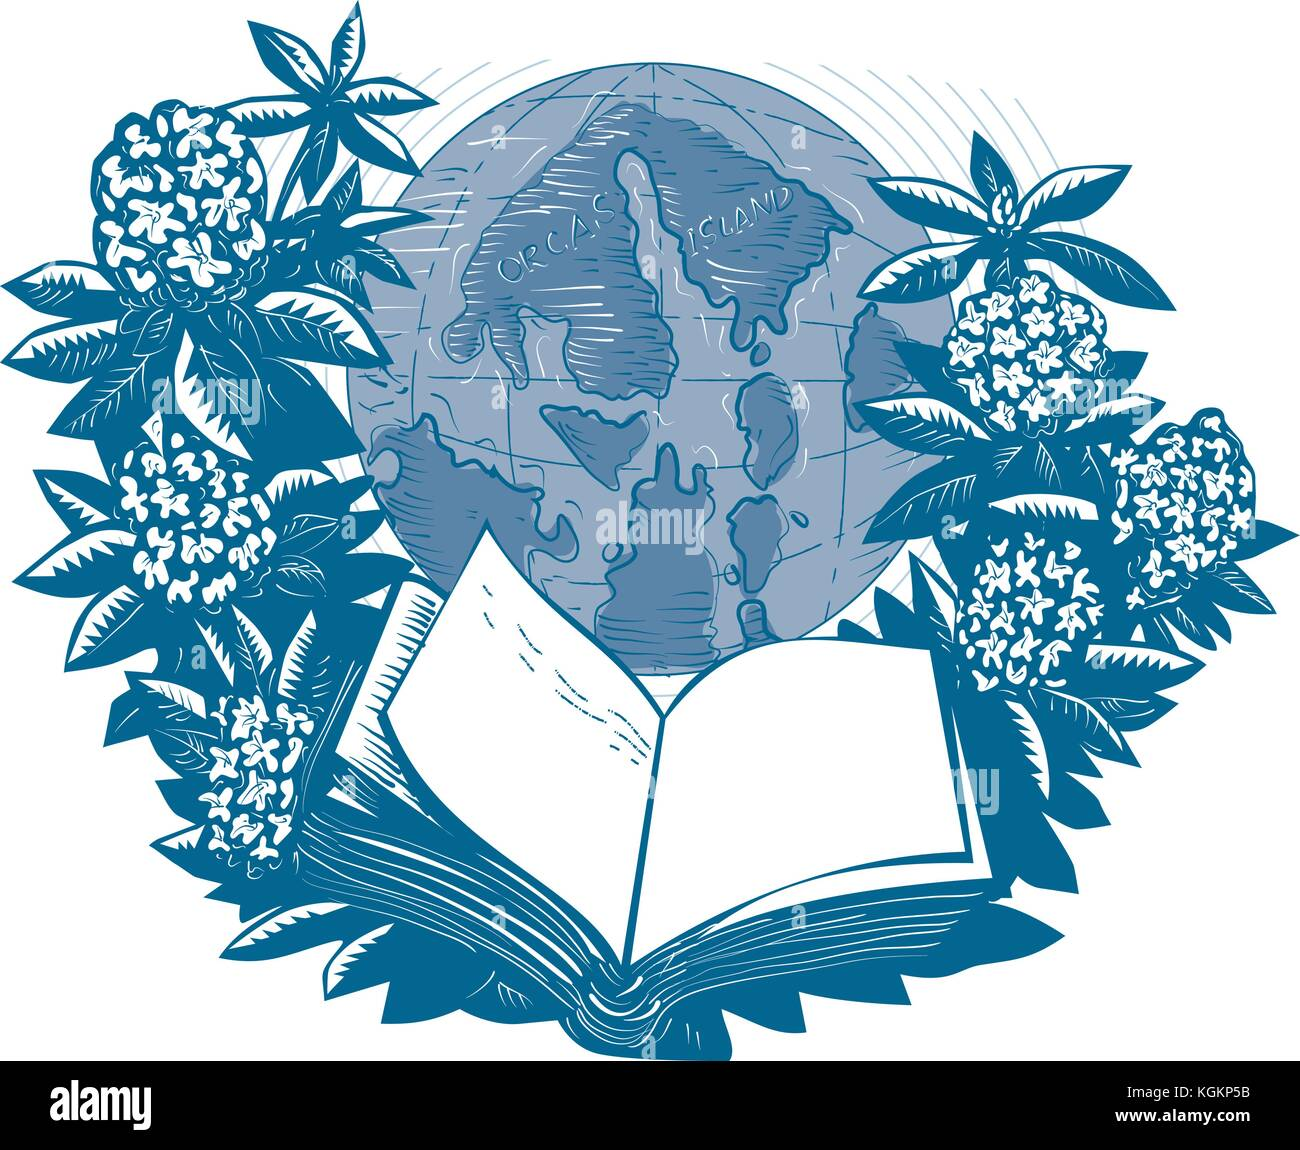 Drawing sketch style illustration showing map of Orcas Island on globe framed by Rhododendron flower and leaves - Stock Vector